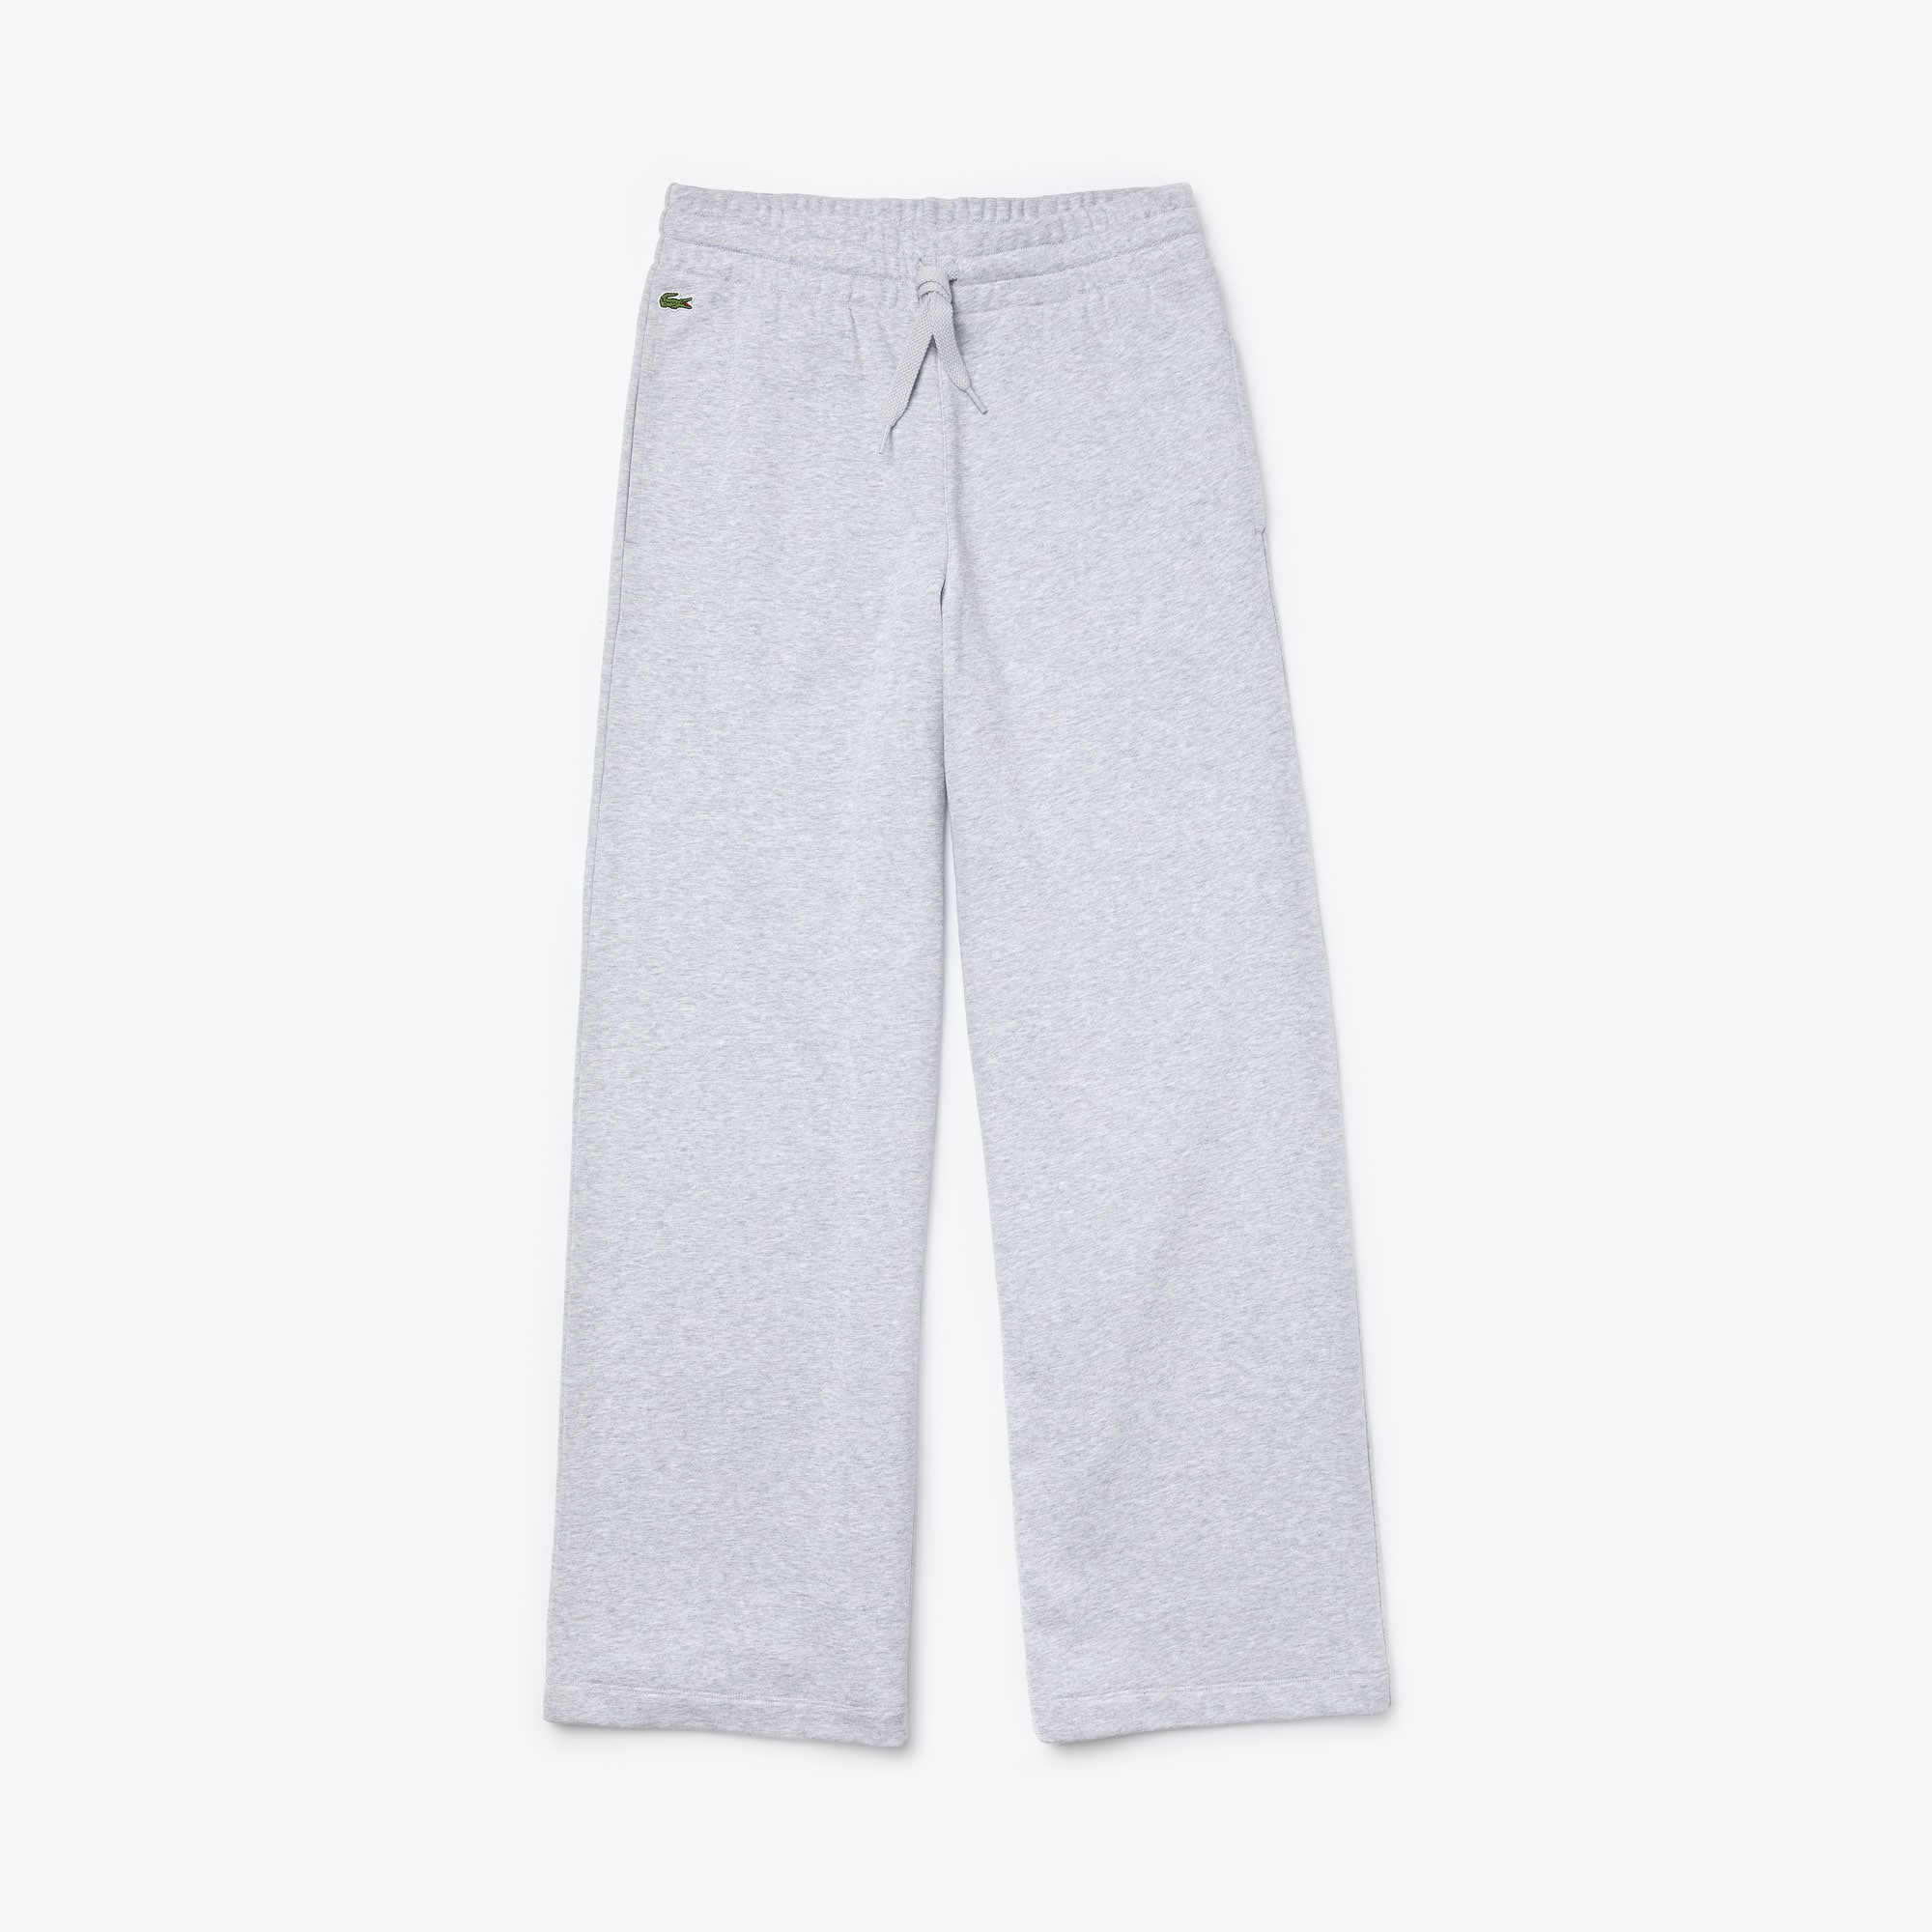 Women's Cotton Fleece Track Pants